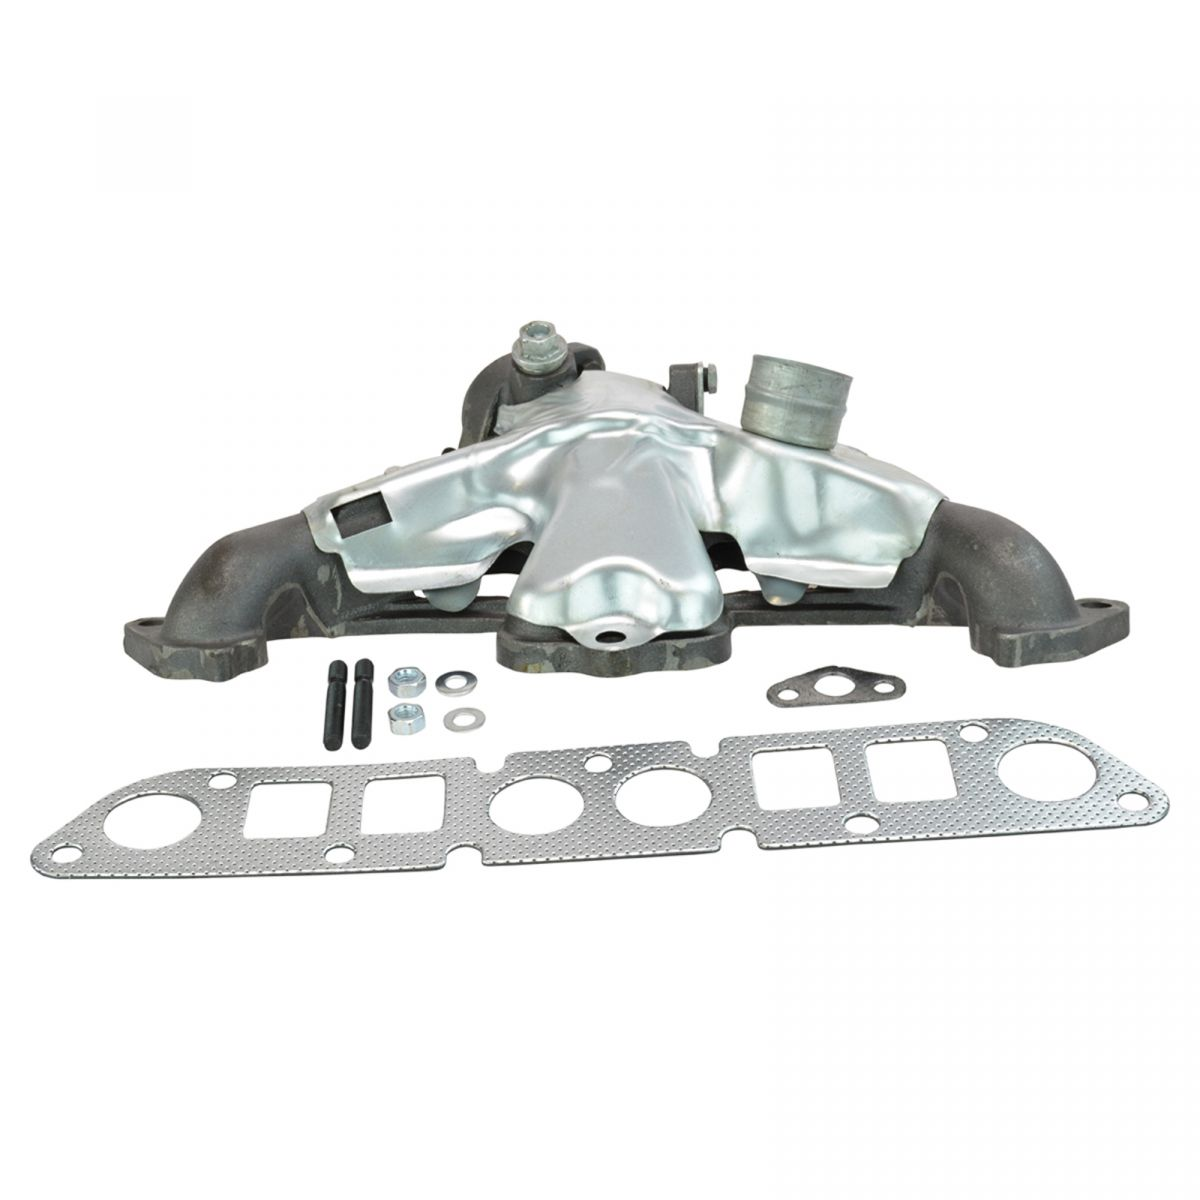 Chrysler Dynasty 1991 1993 Manifold Absolute: Cast Iron Exhaust Manifold W/ Gasket Kit For Cherokee